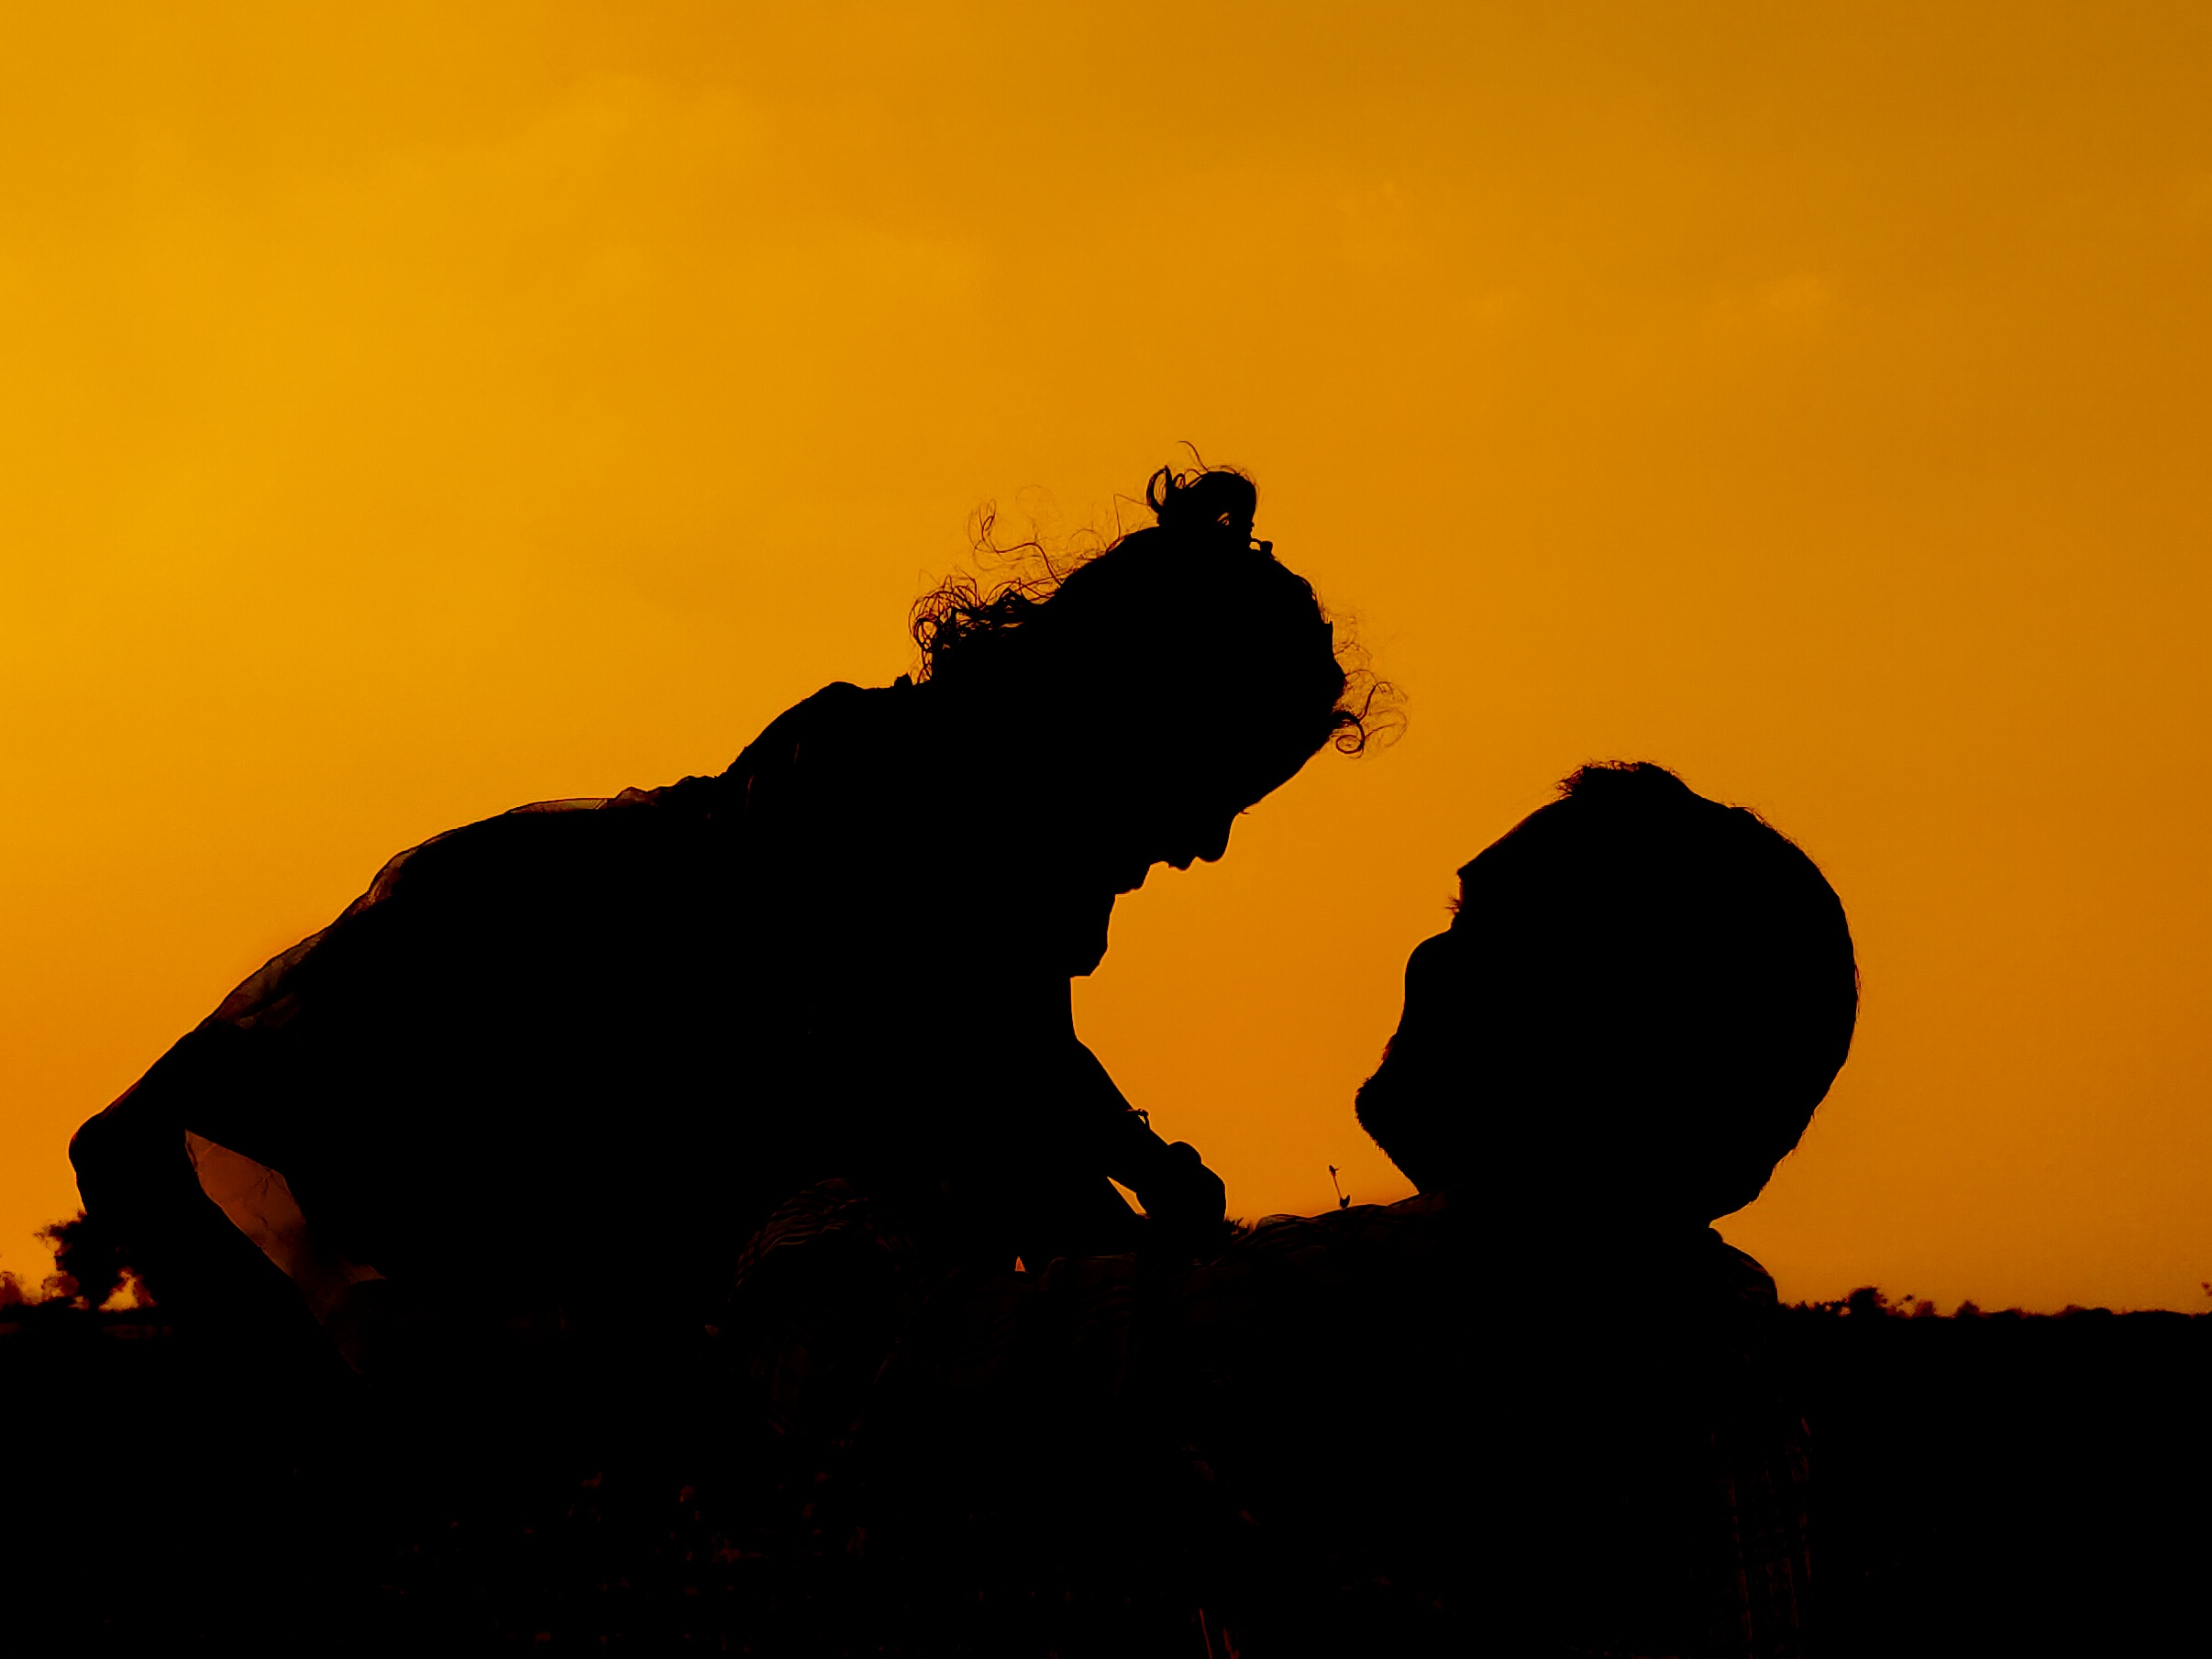 Father and Daughter - Free Image by Tharun Teja Reddy on PixaHive.com